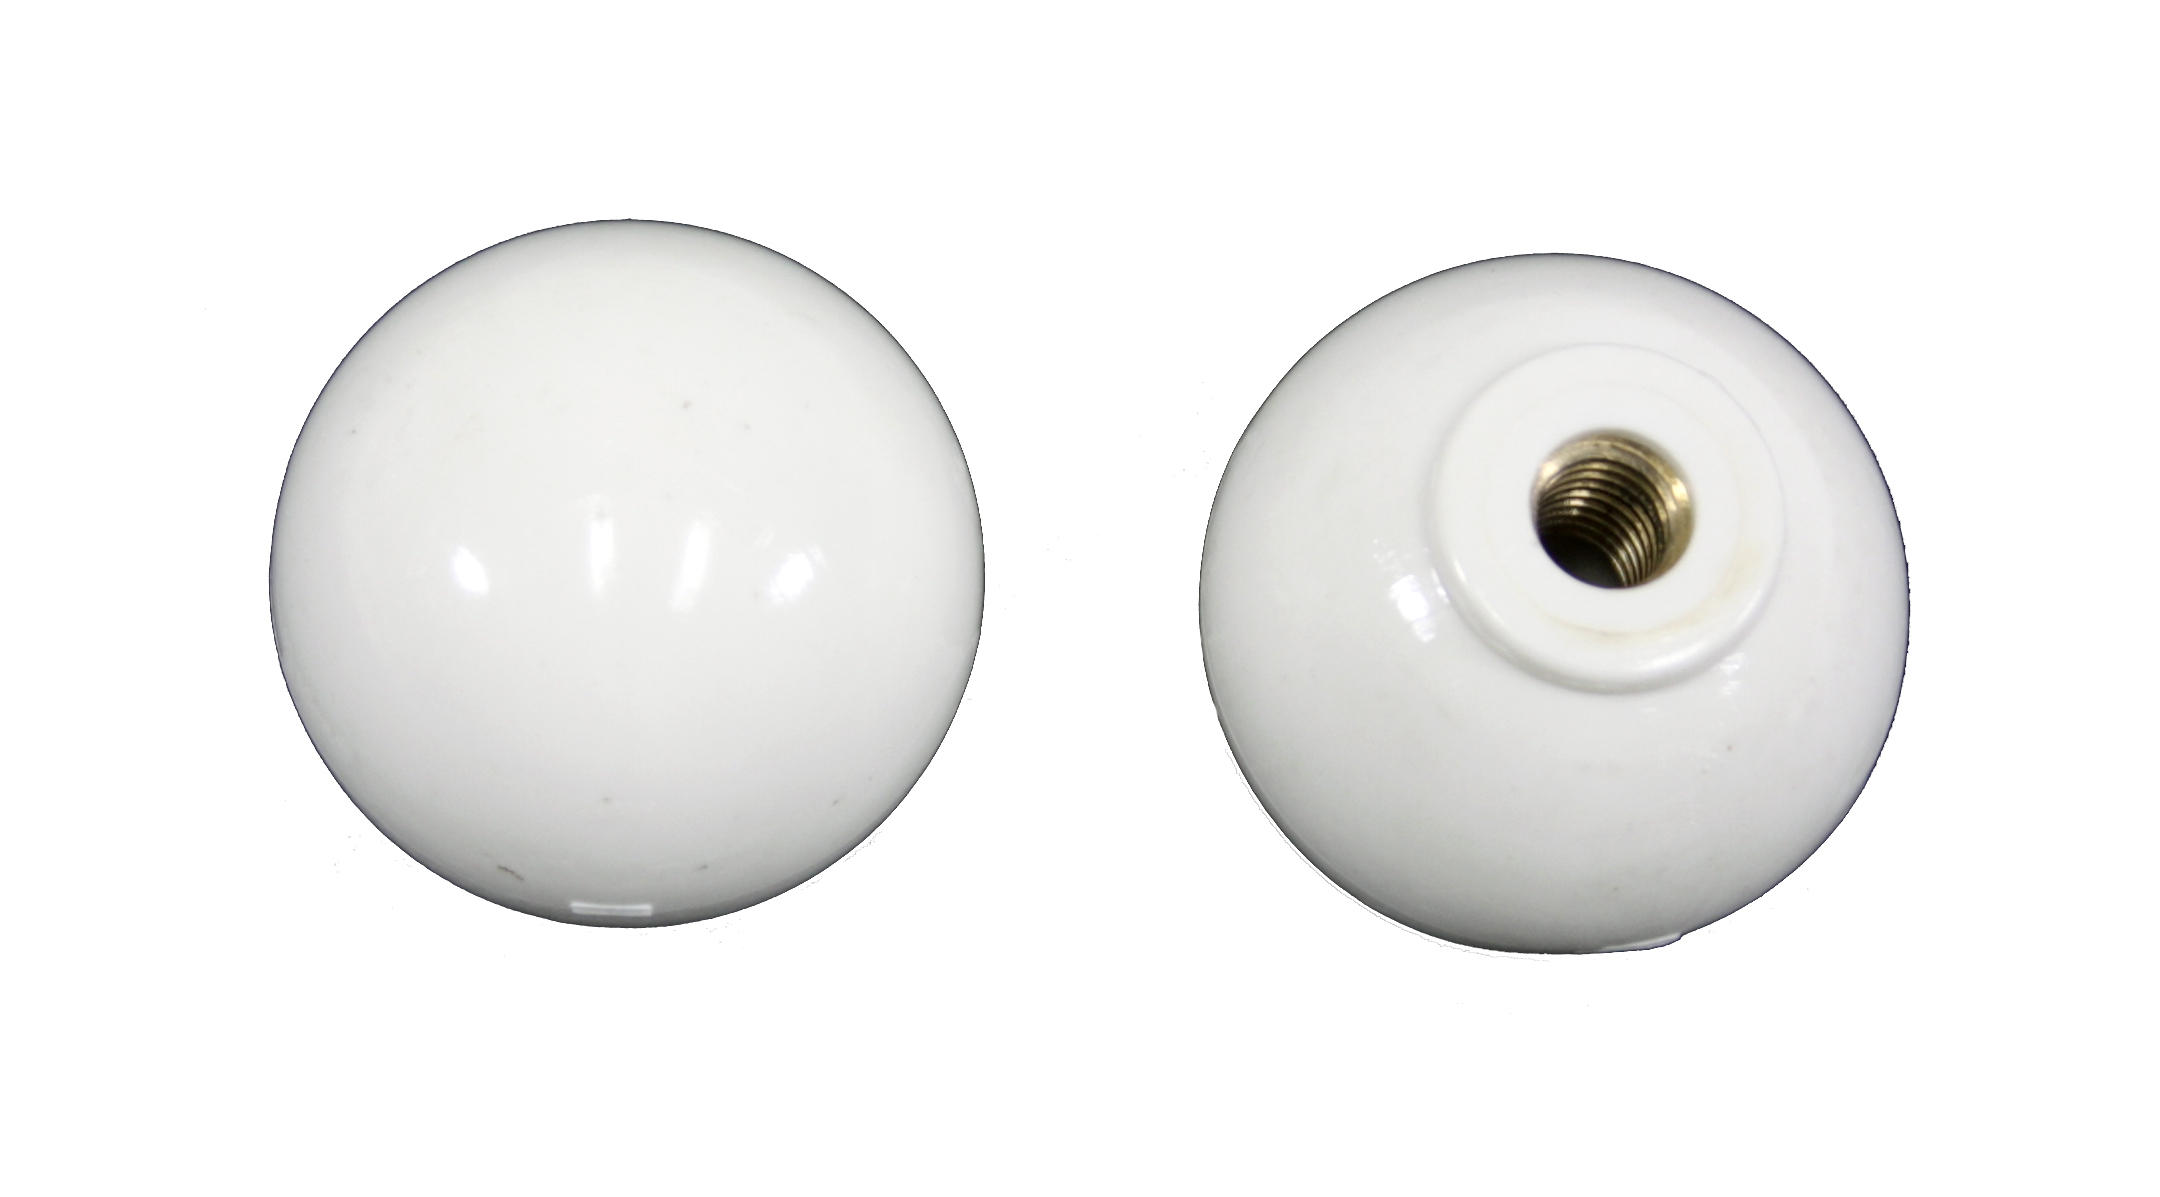 Corvette Door Knob - Pair (white)